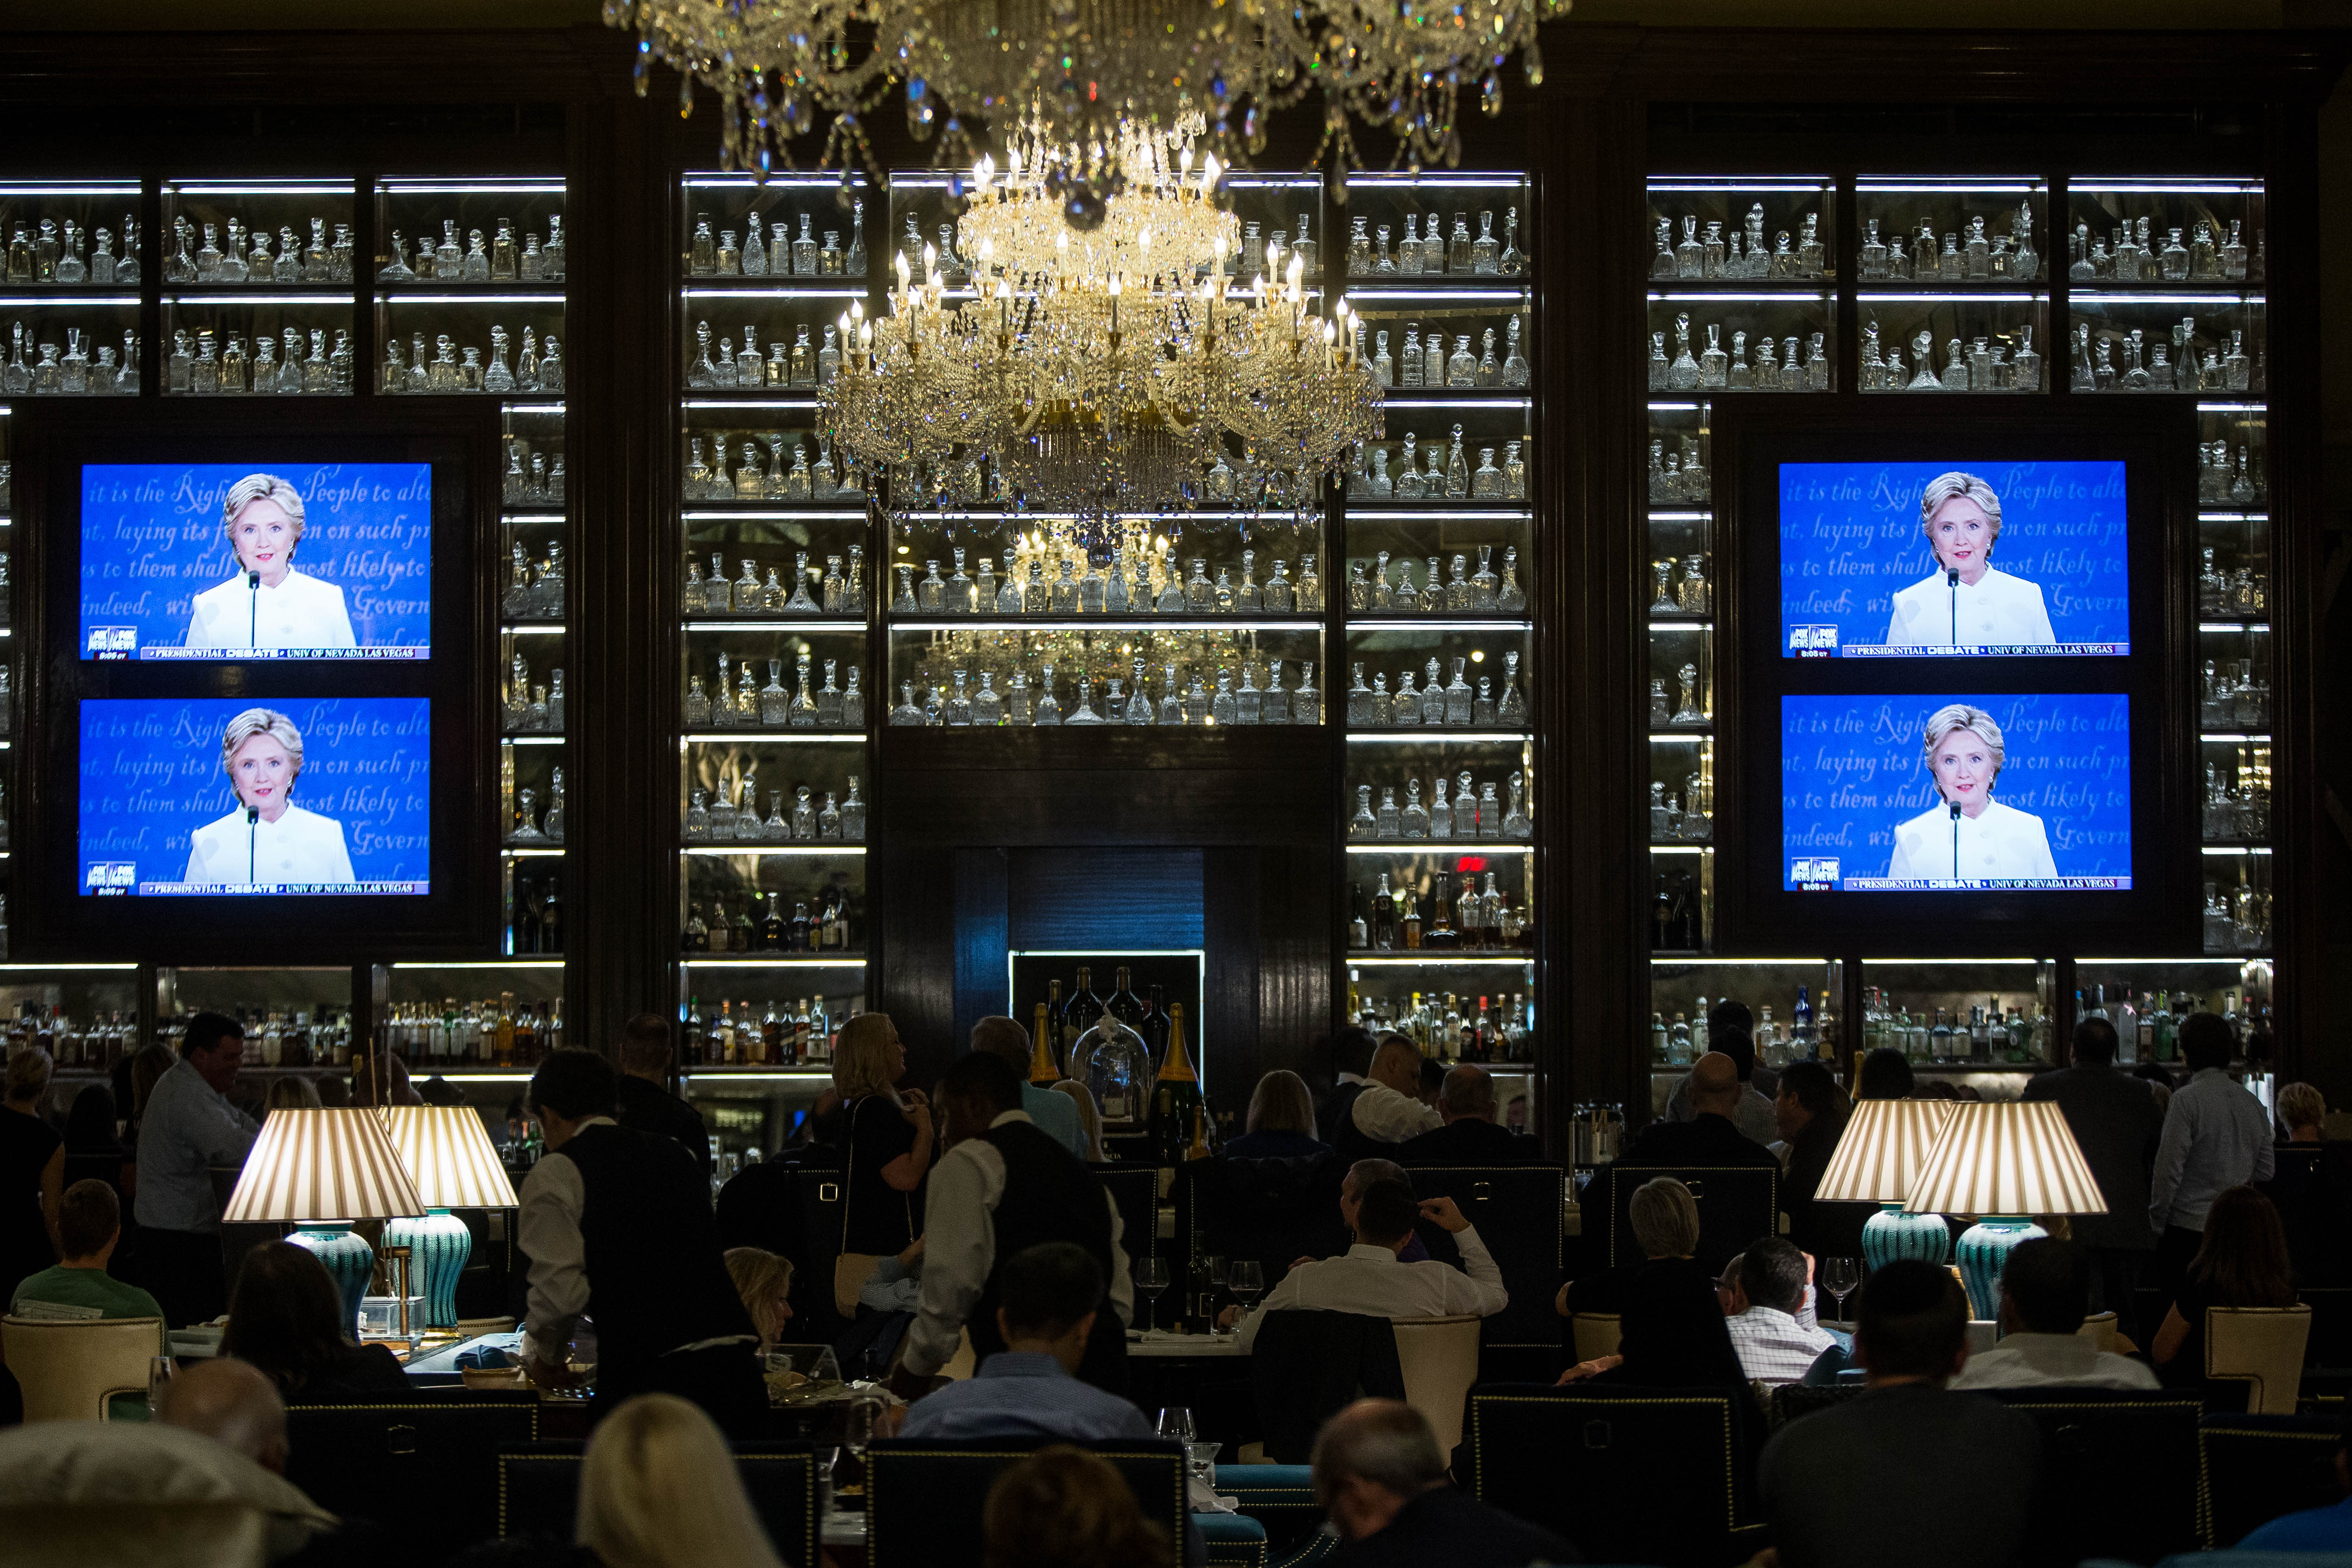 People watch the third presidential debate between presidential debate between US Democratic presidential candidate Hillary Clinton and US Republican presidential candidate Donald Trump at the Trump International Hotel October 19, 2016 in Washington, D.C. / AFP / ZACH GIBSON / Getty Images)